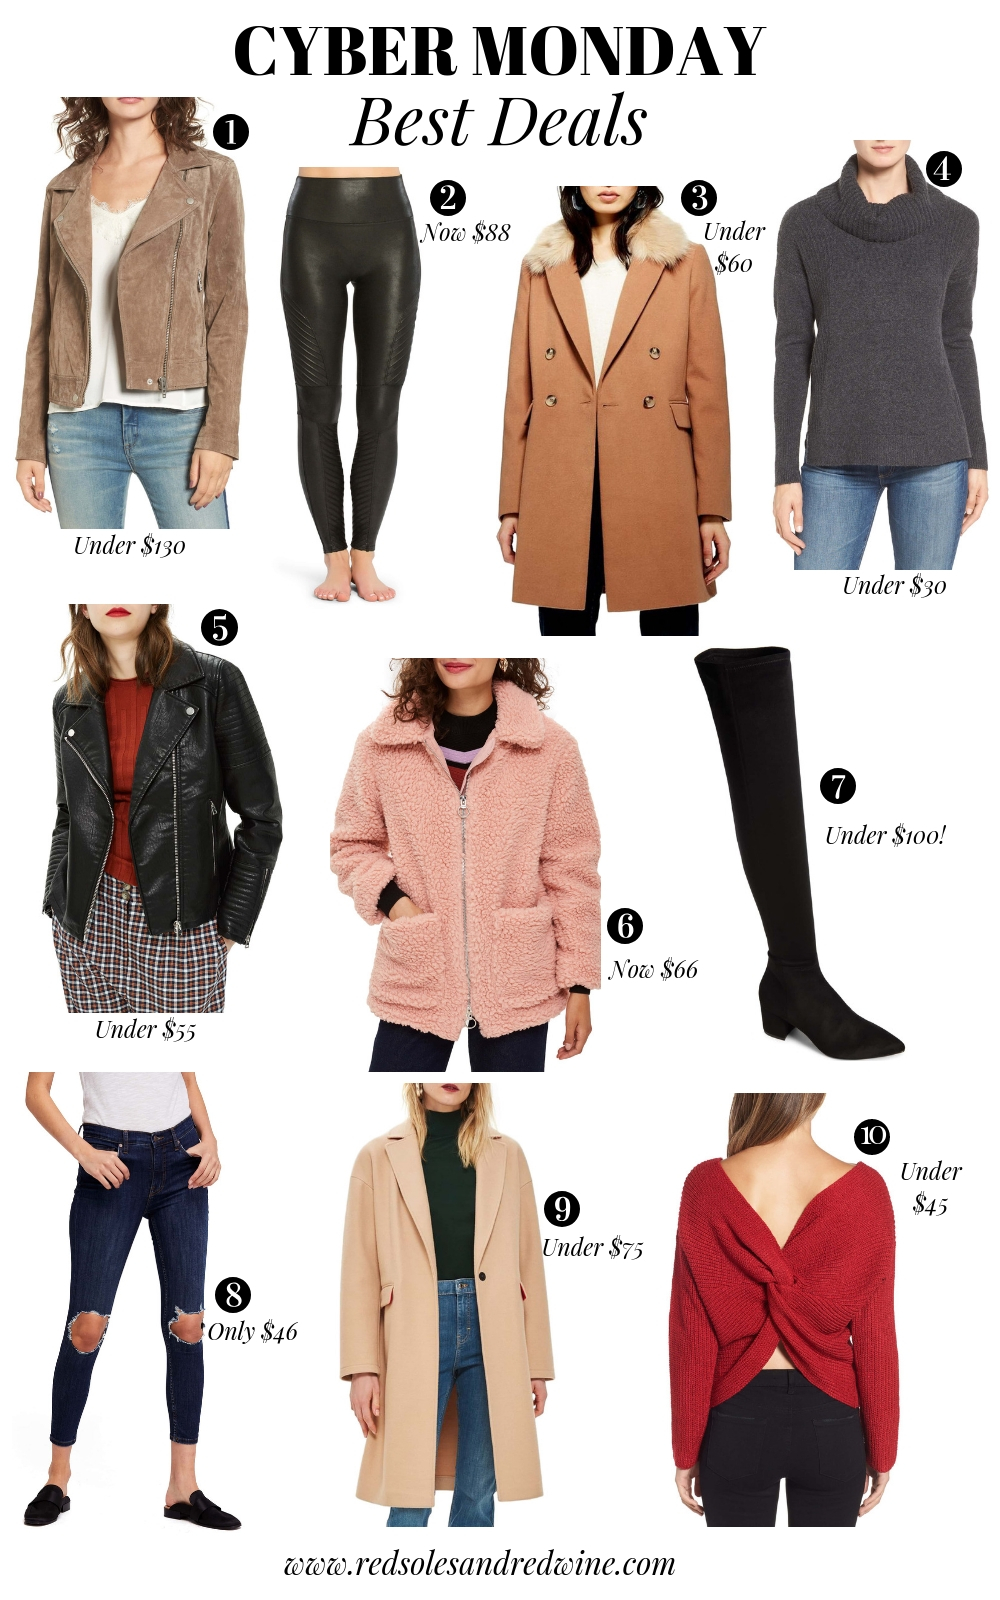 cyber Monday deals, fall wardrobe for a steal, style steals, shopbop sale, trends for fall for less, fall outfit inspiration, fall outfit ideas, fall wardrobe essentials, what to wear this fall and winter, winter wardrobe essentials